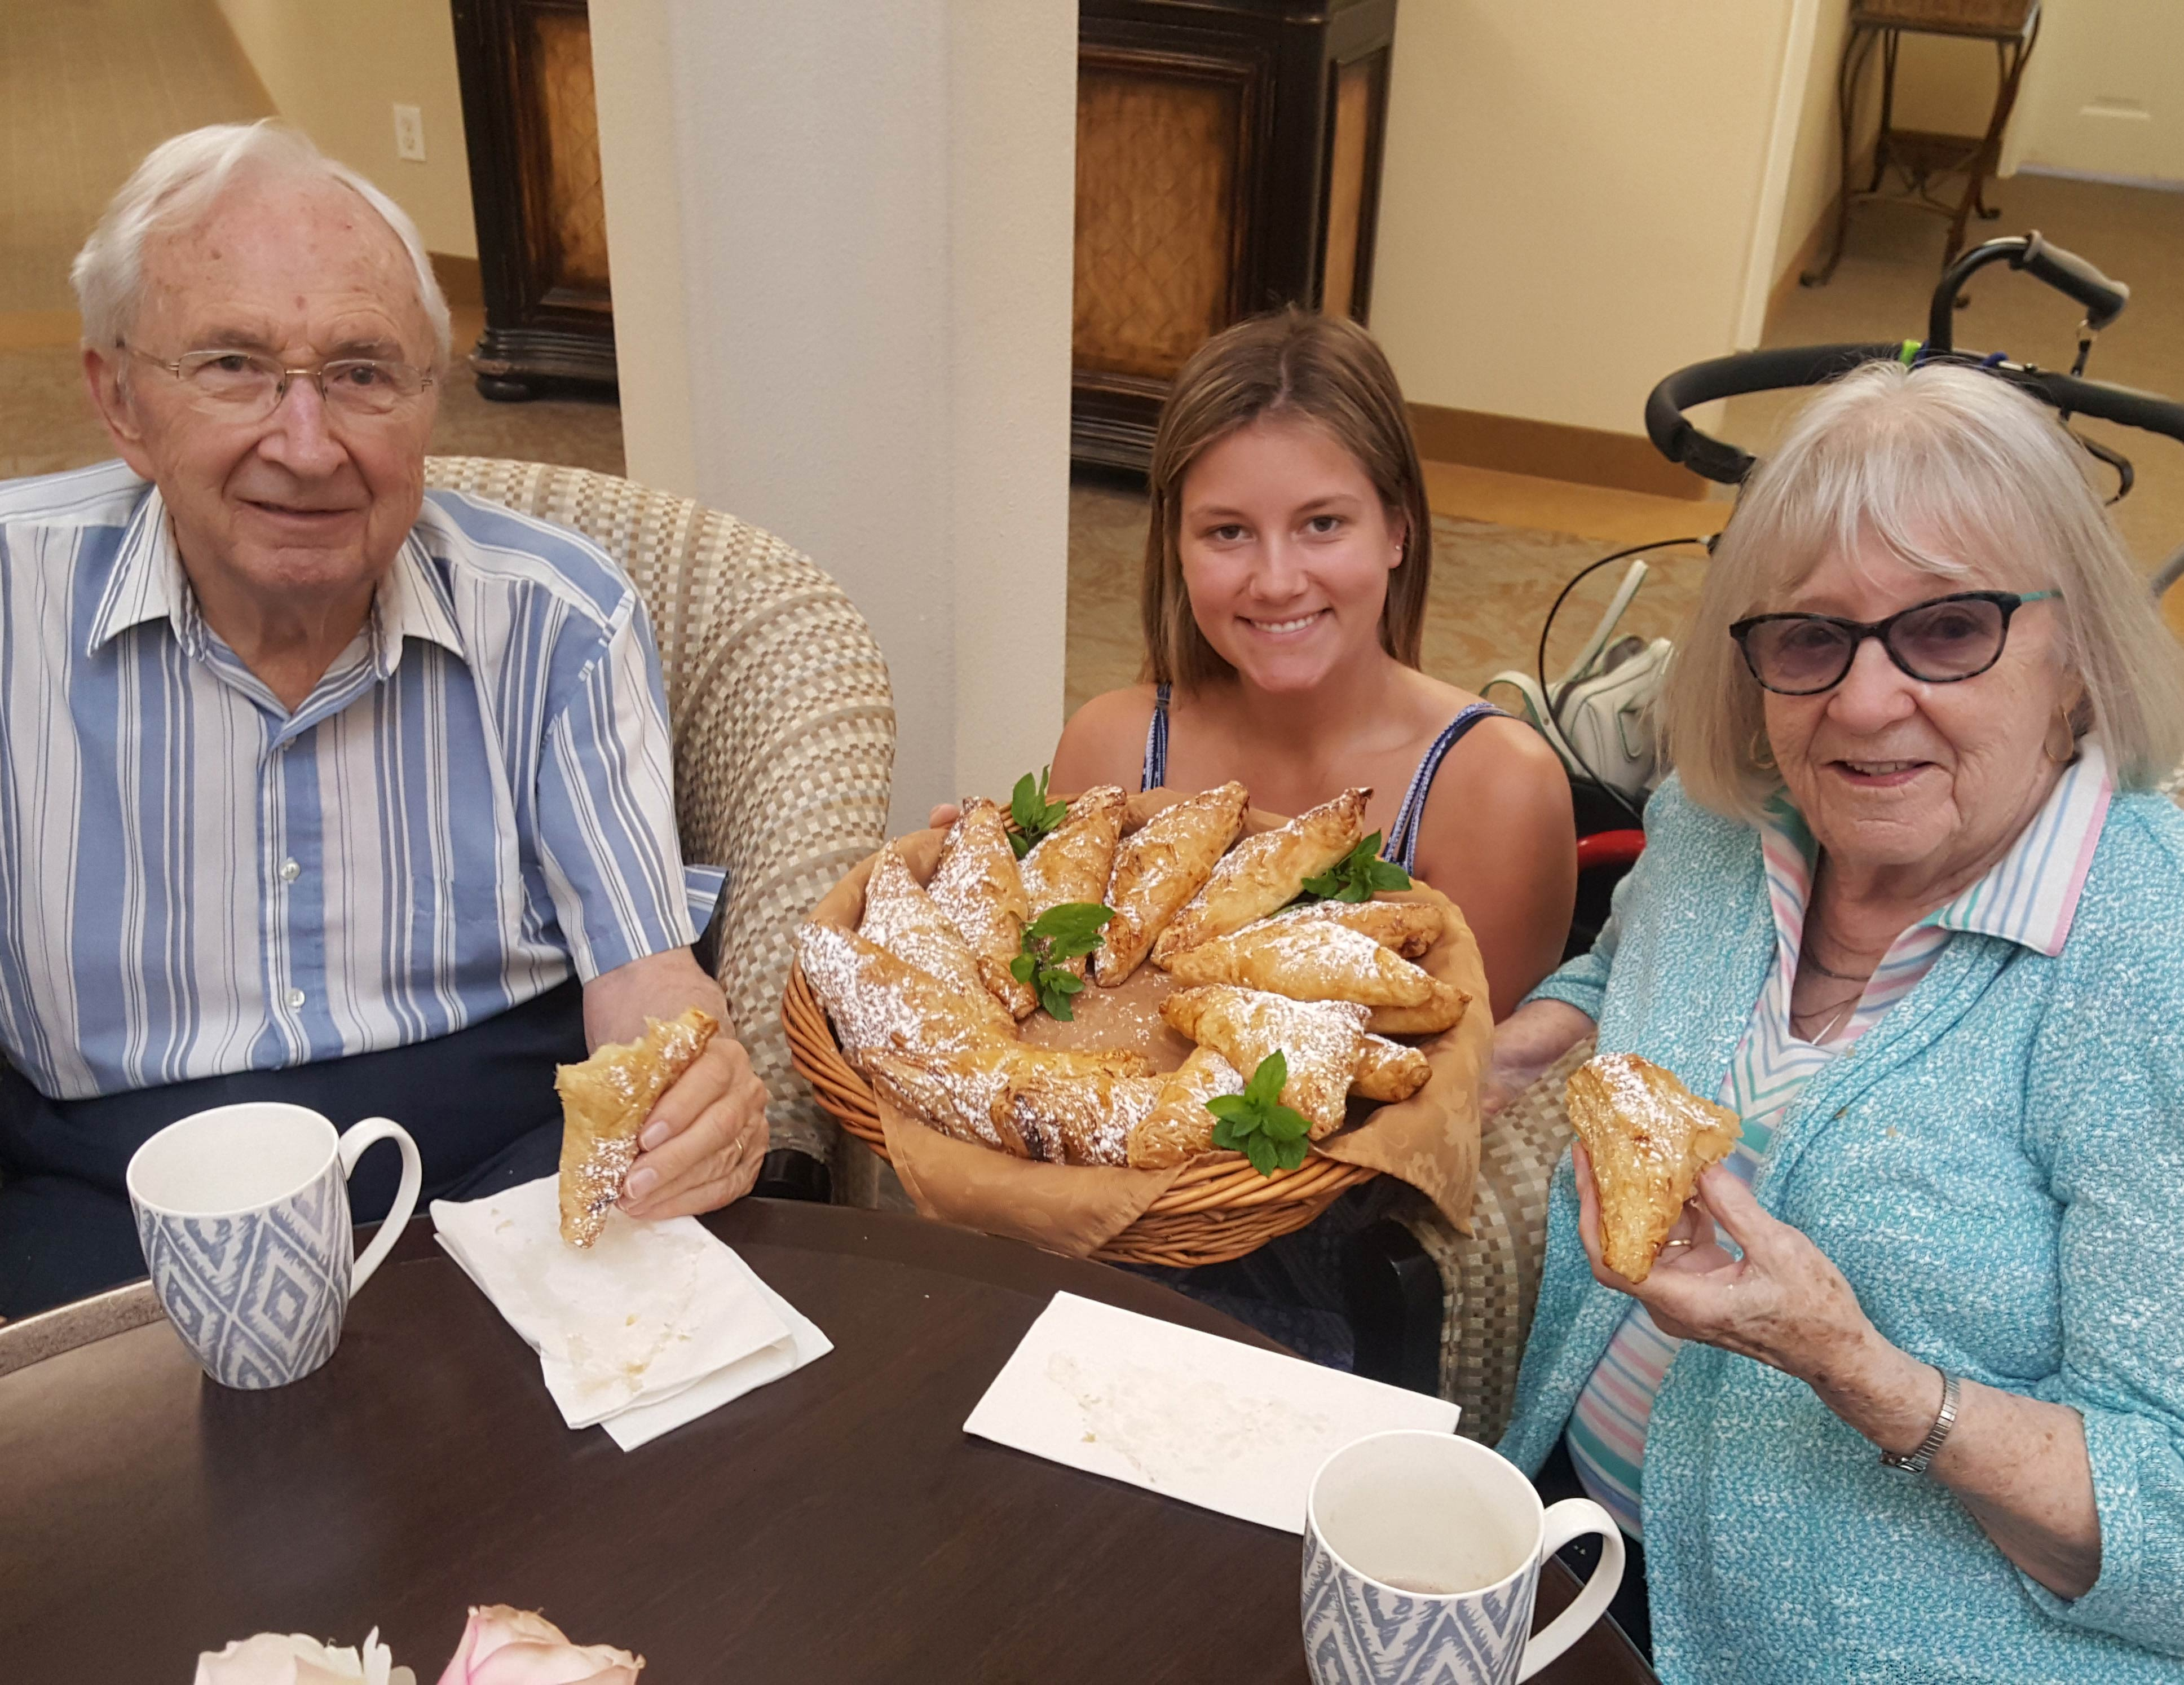 Two seniors and a volunteer holding baked goods.